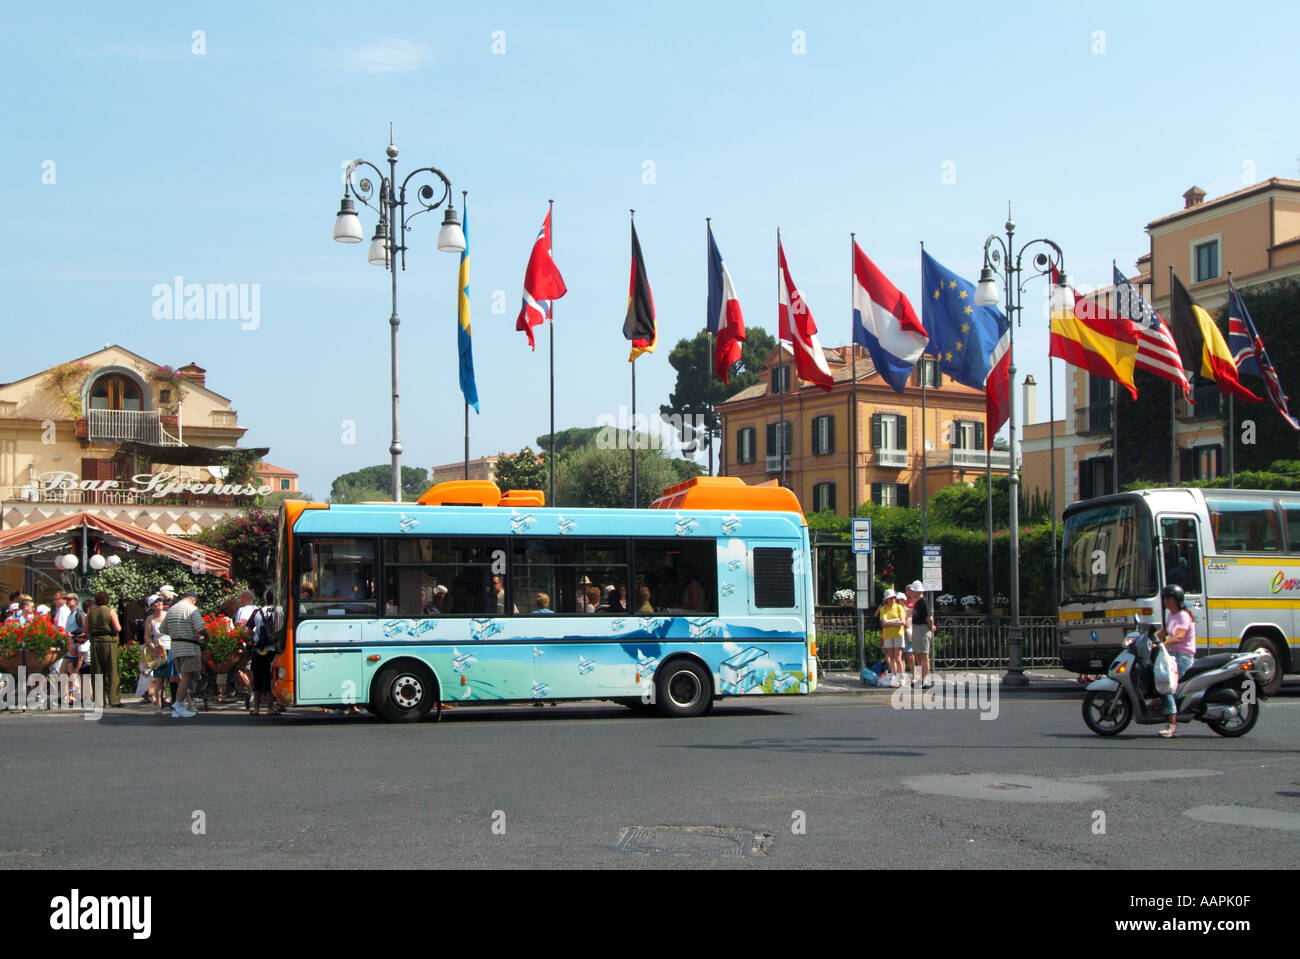 Sorrento resort town centre Tasso Square with bus stop and traffic with flags flying - Stock Image